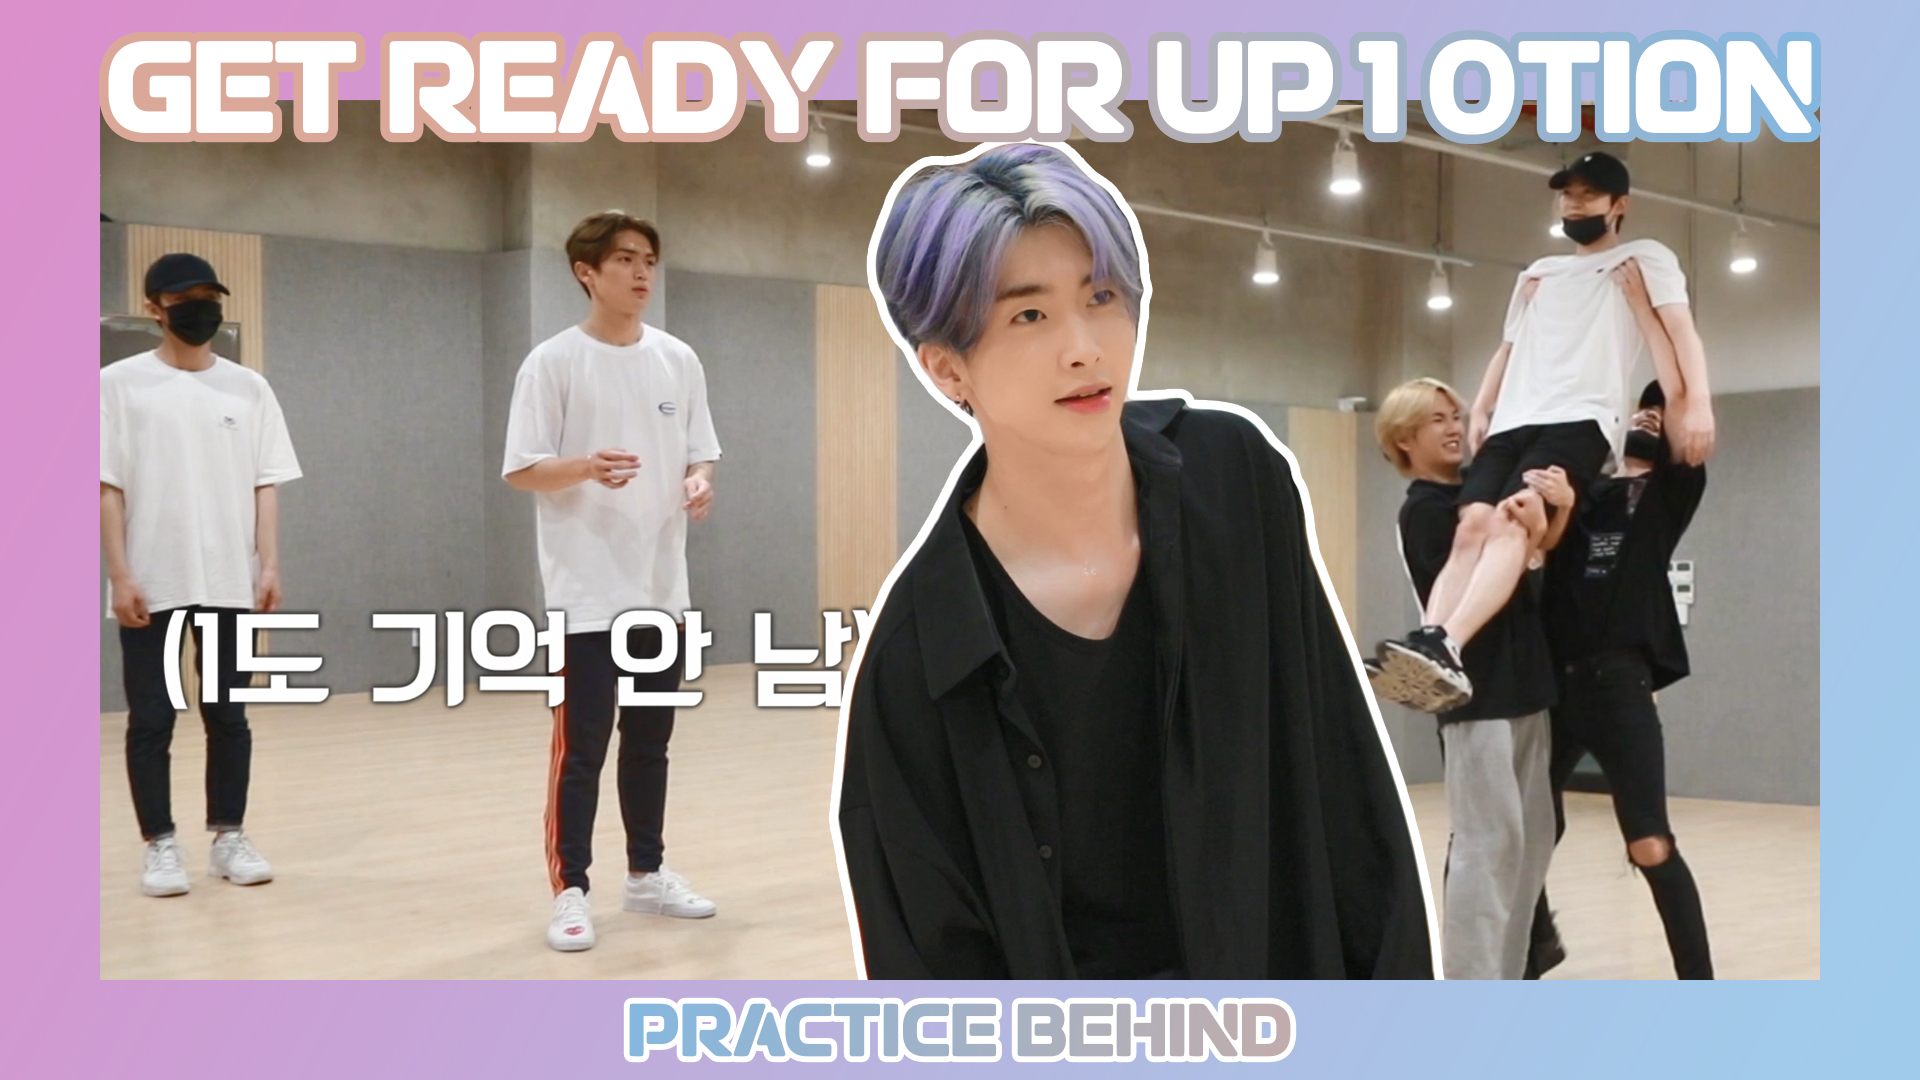 Get ready for UP10TION - DANCE PRACTICE BEHIND